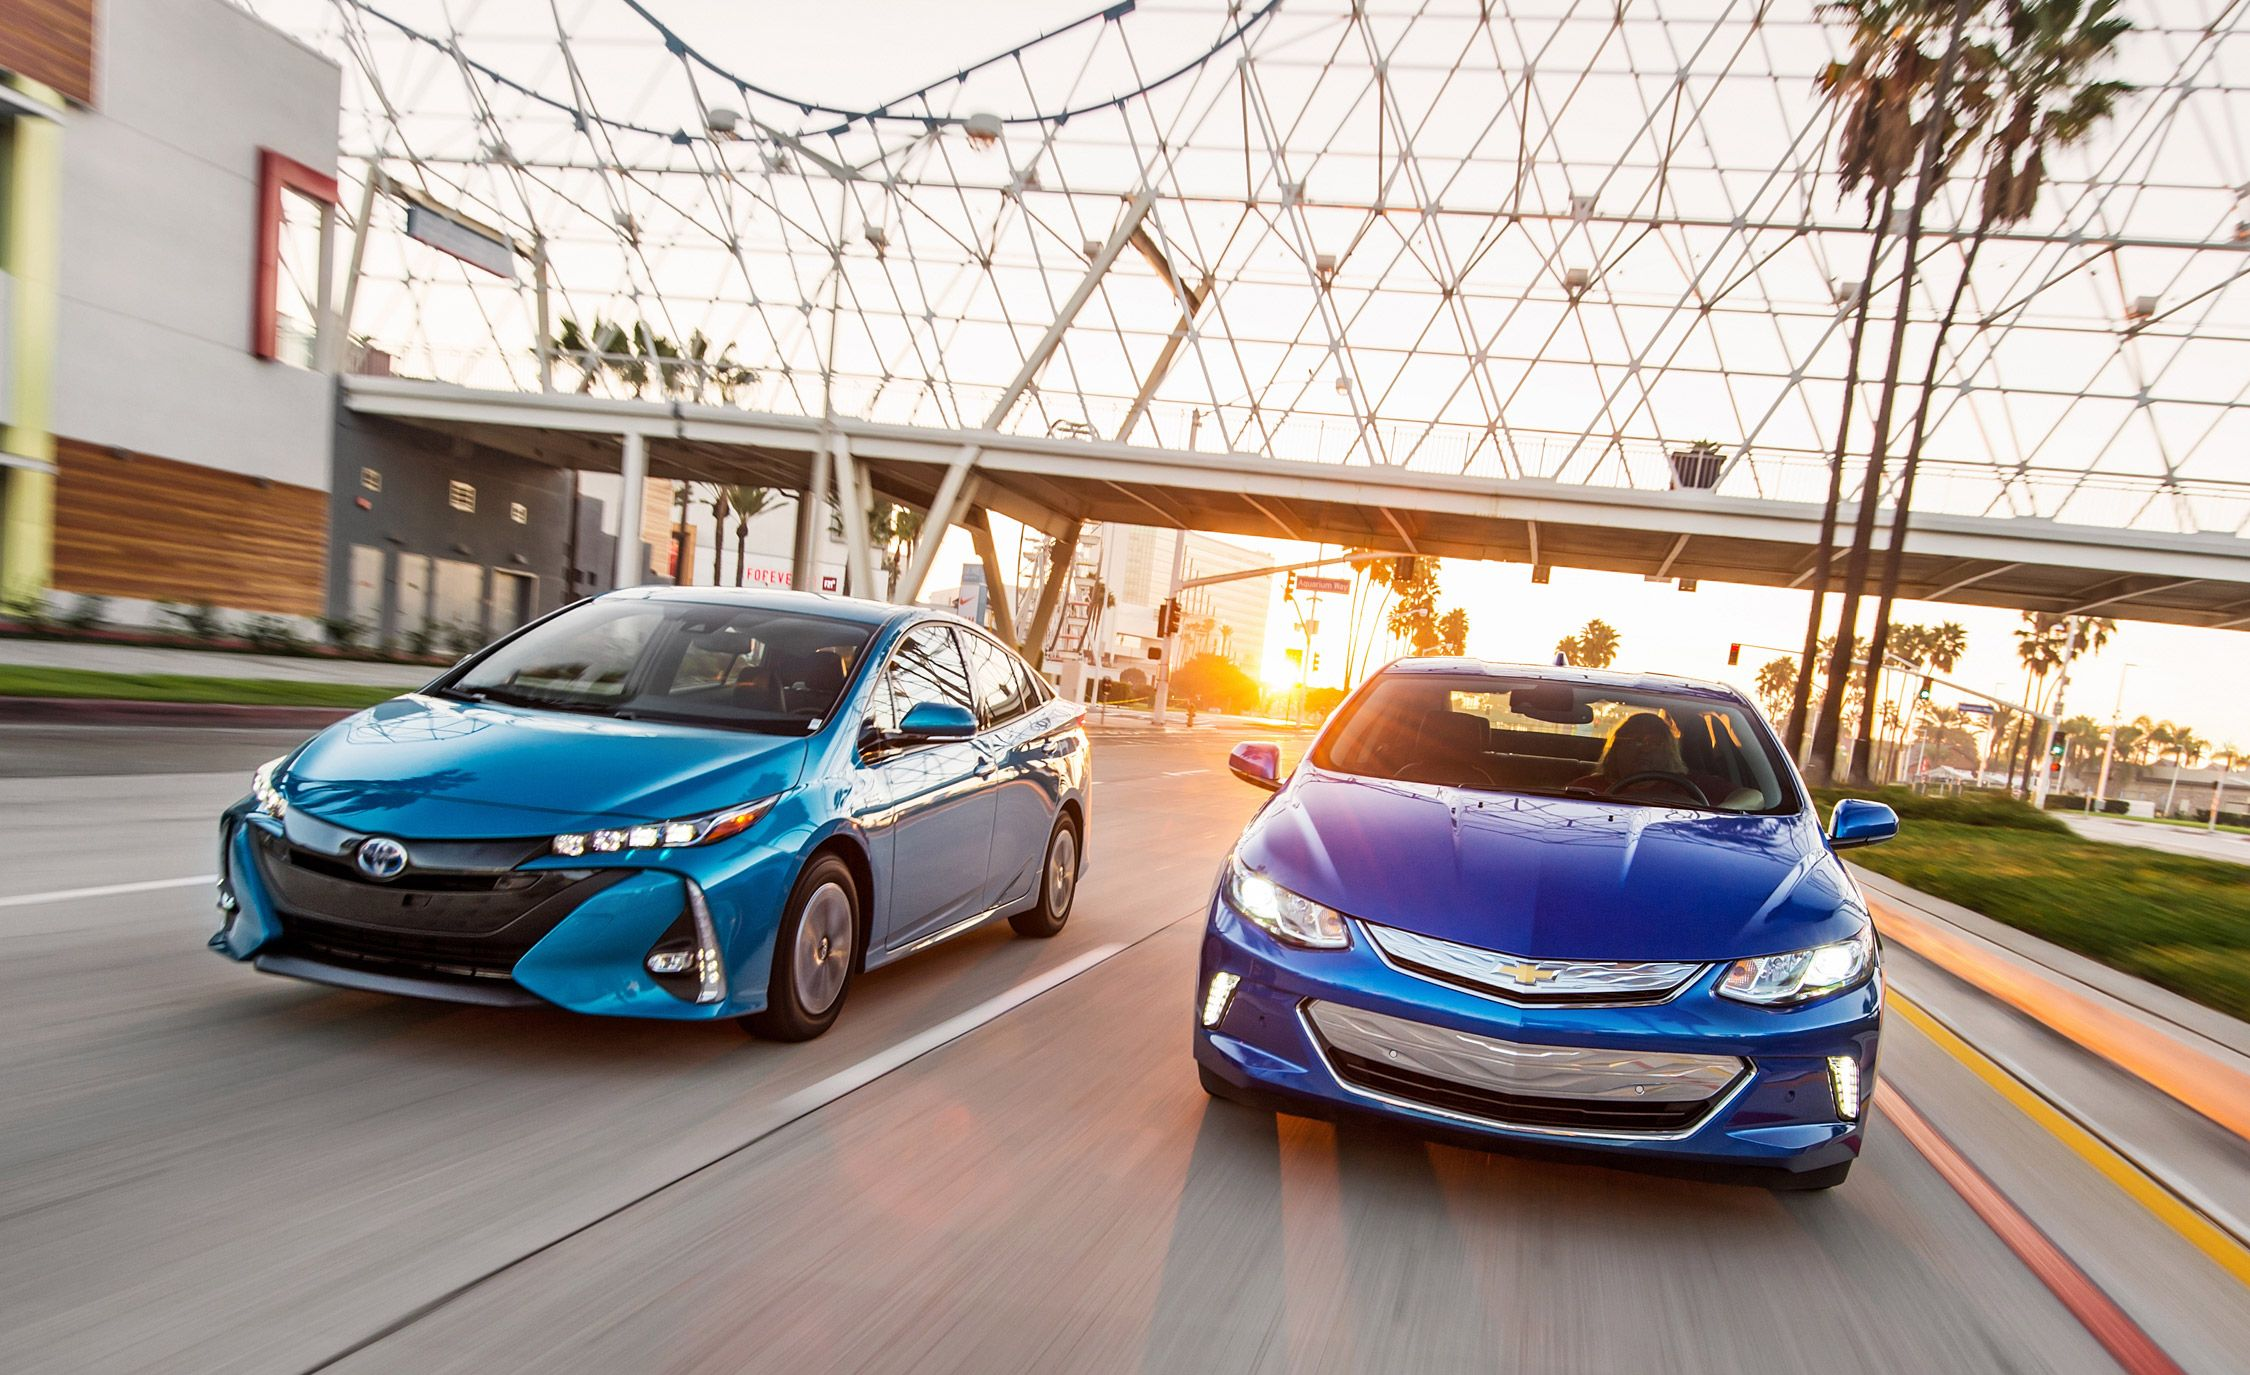 2017 Chevrolet Volt Premier Vs Toyota Prius Prime Advanced 8211 Comparison Test Car And Driver